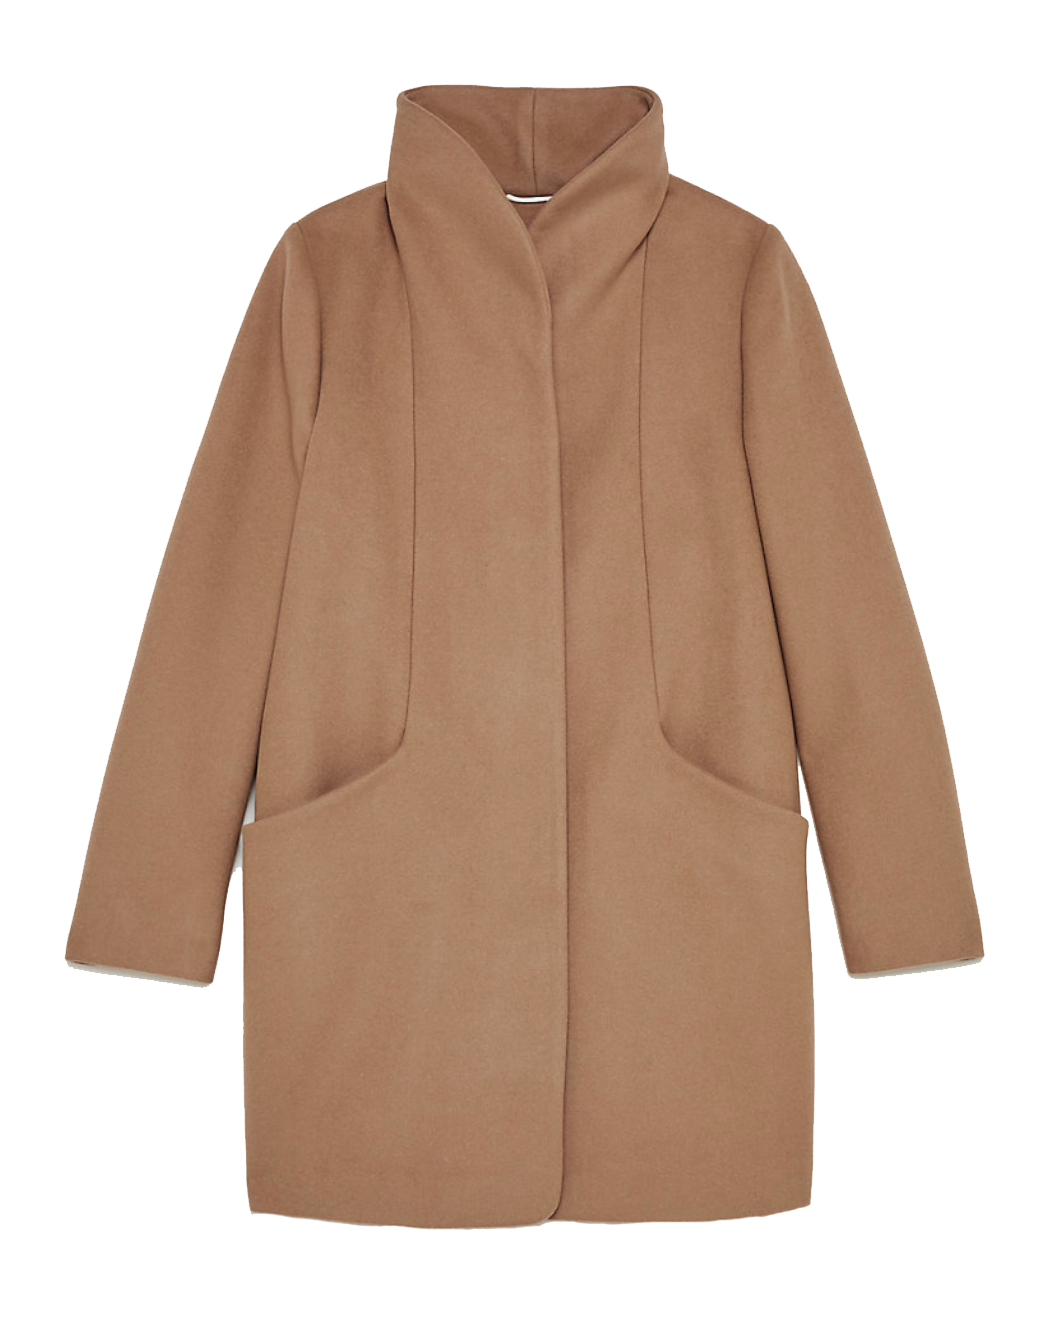 The Virgin-Wool Cocoon - in Gold Camel